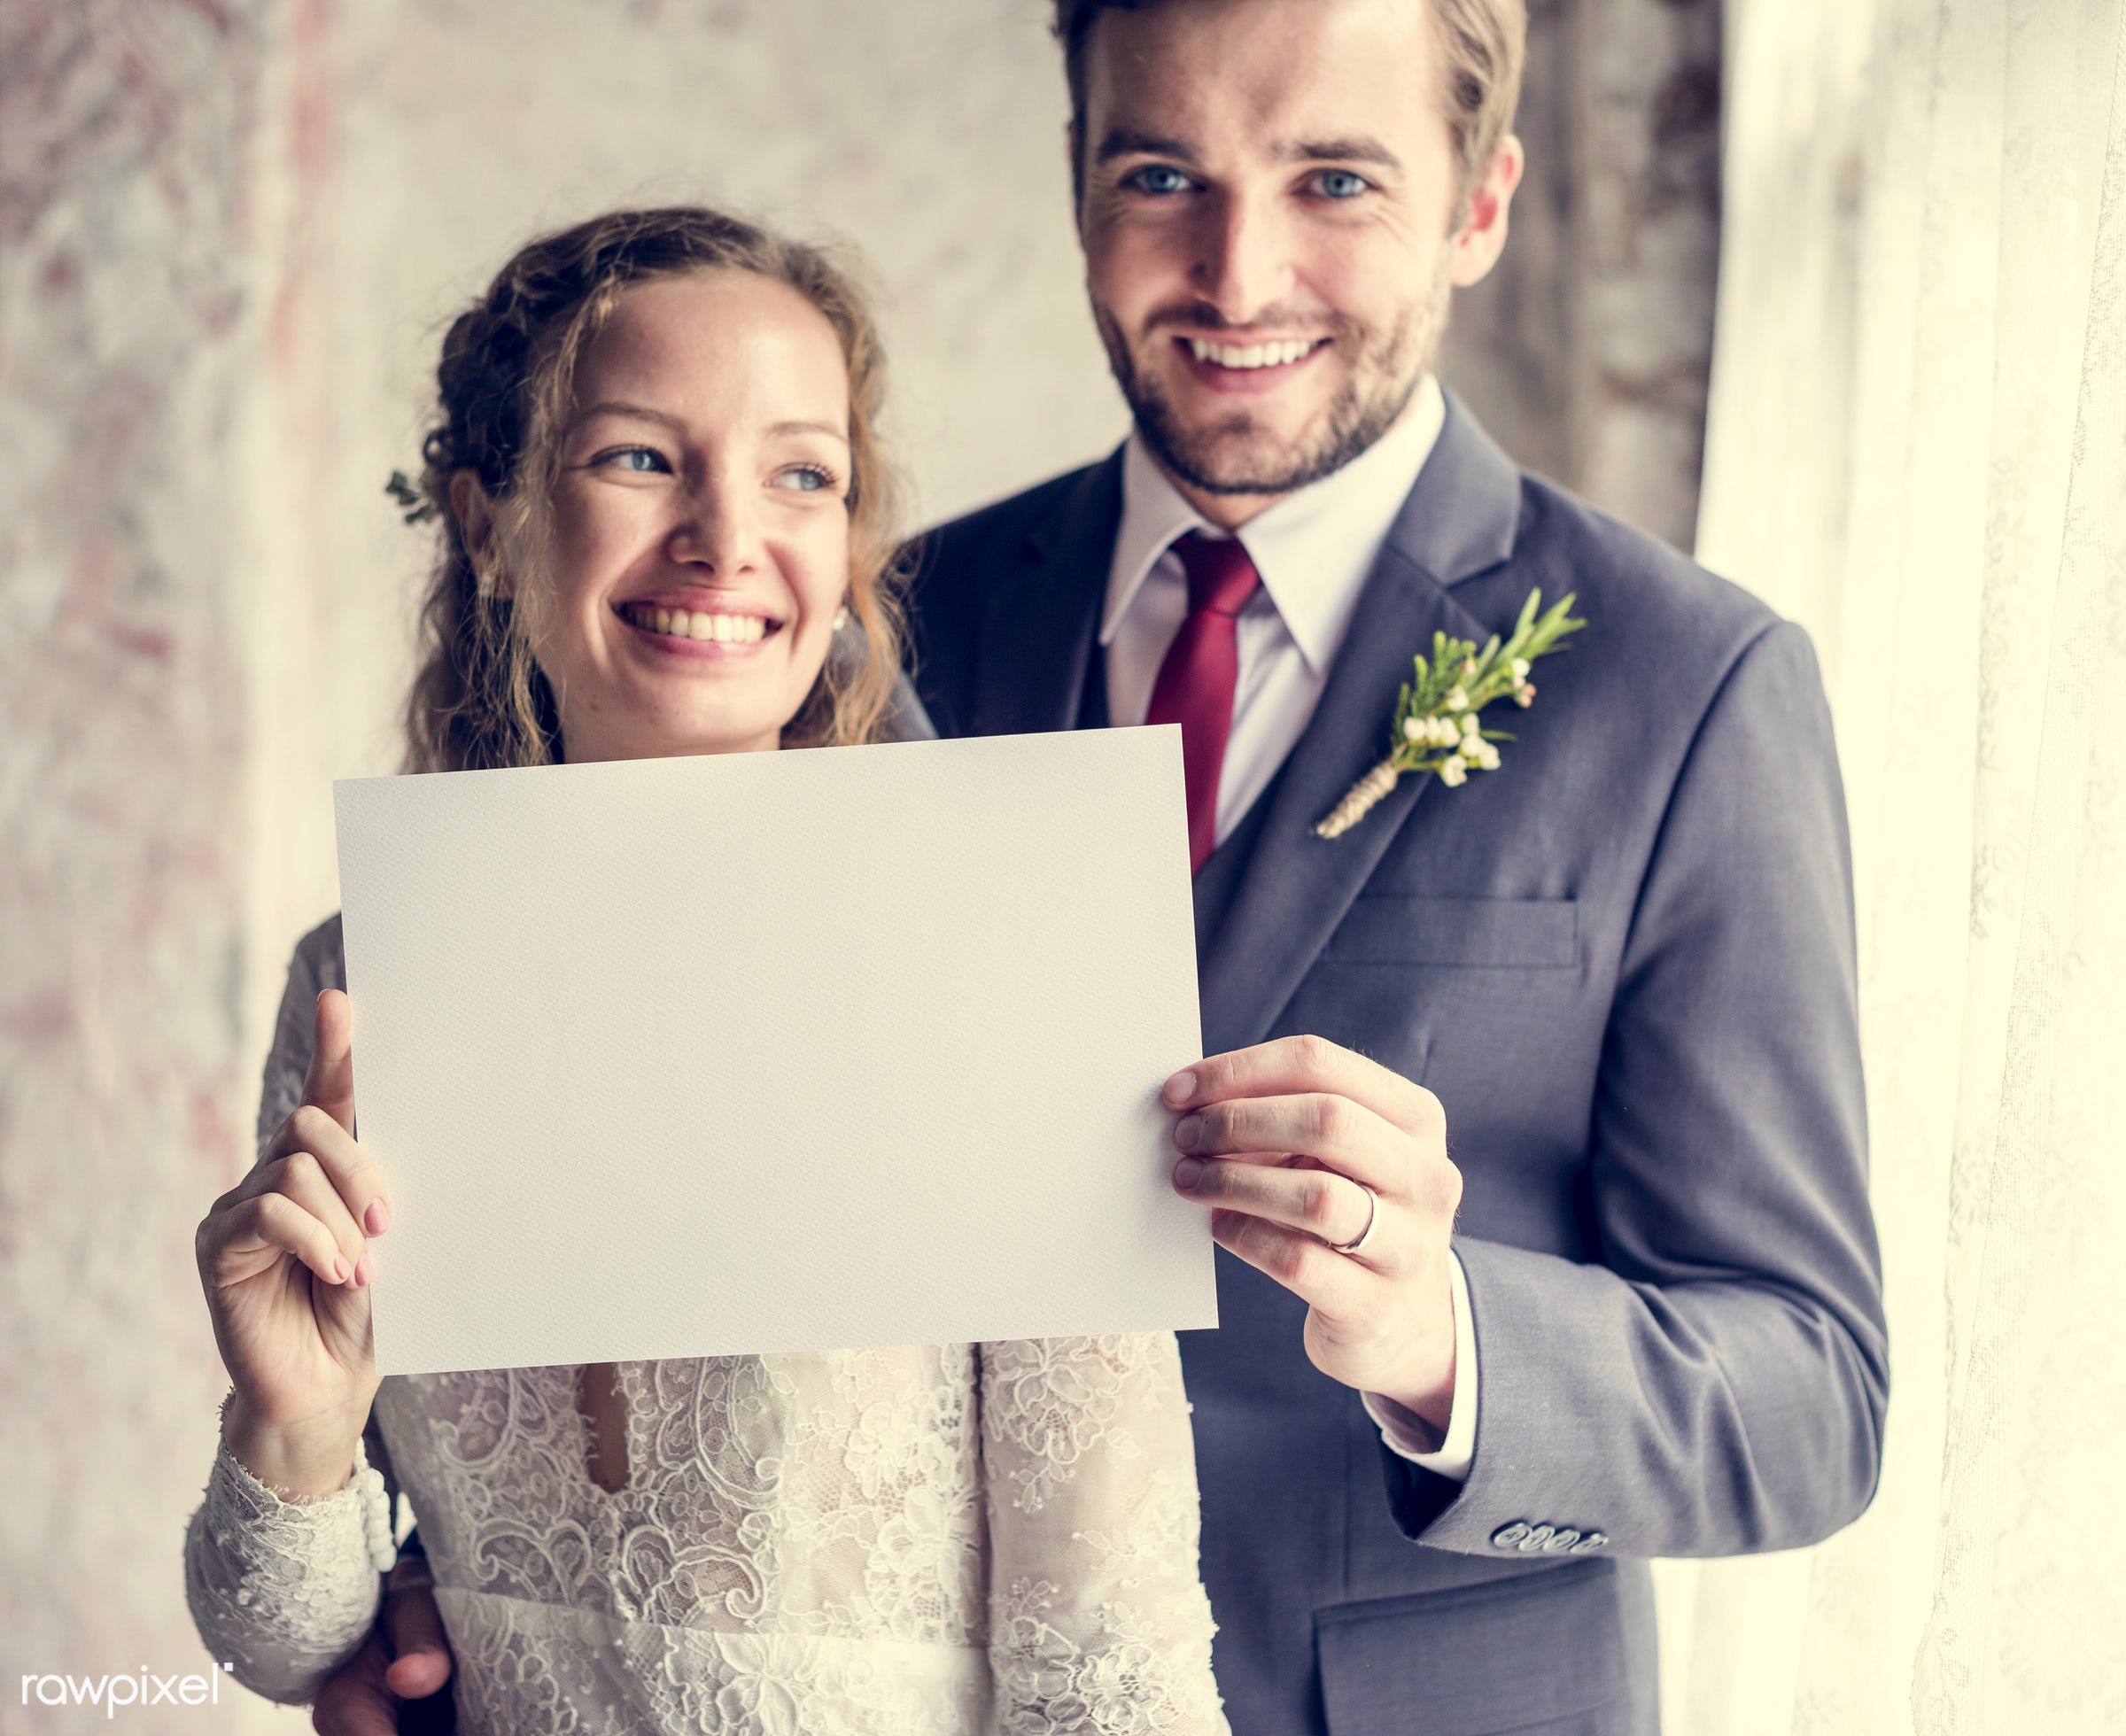 person, copy space, holding, bonding, husband, people, placard, love, woman, event, care, couple, soulmate, bride, cheerful...